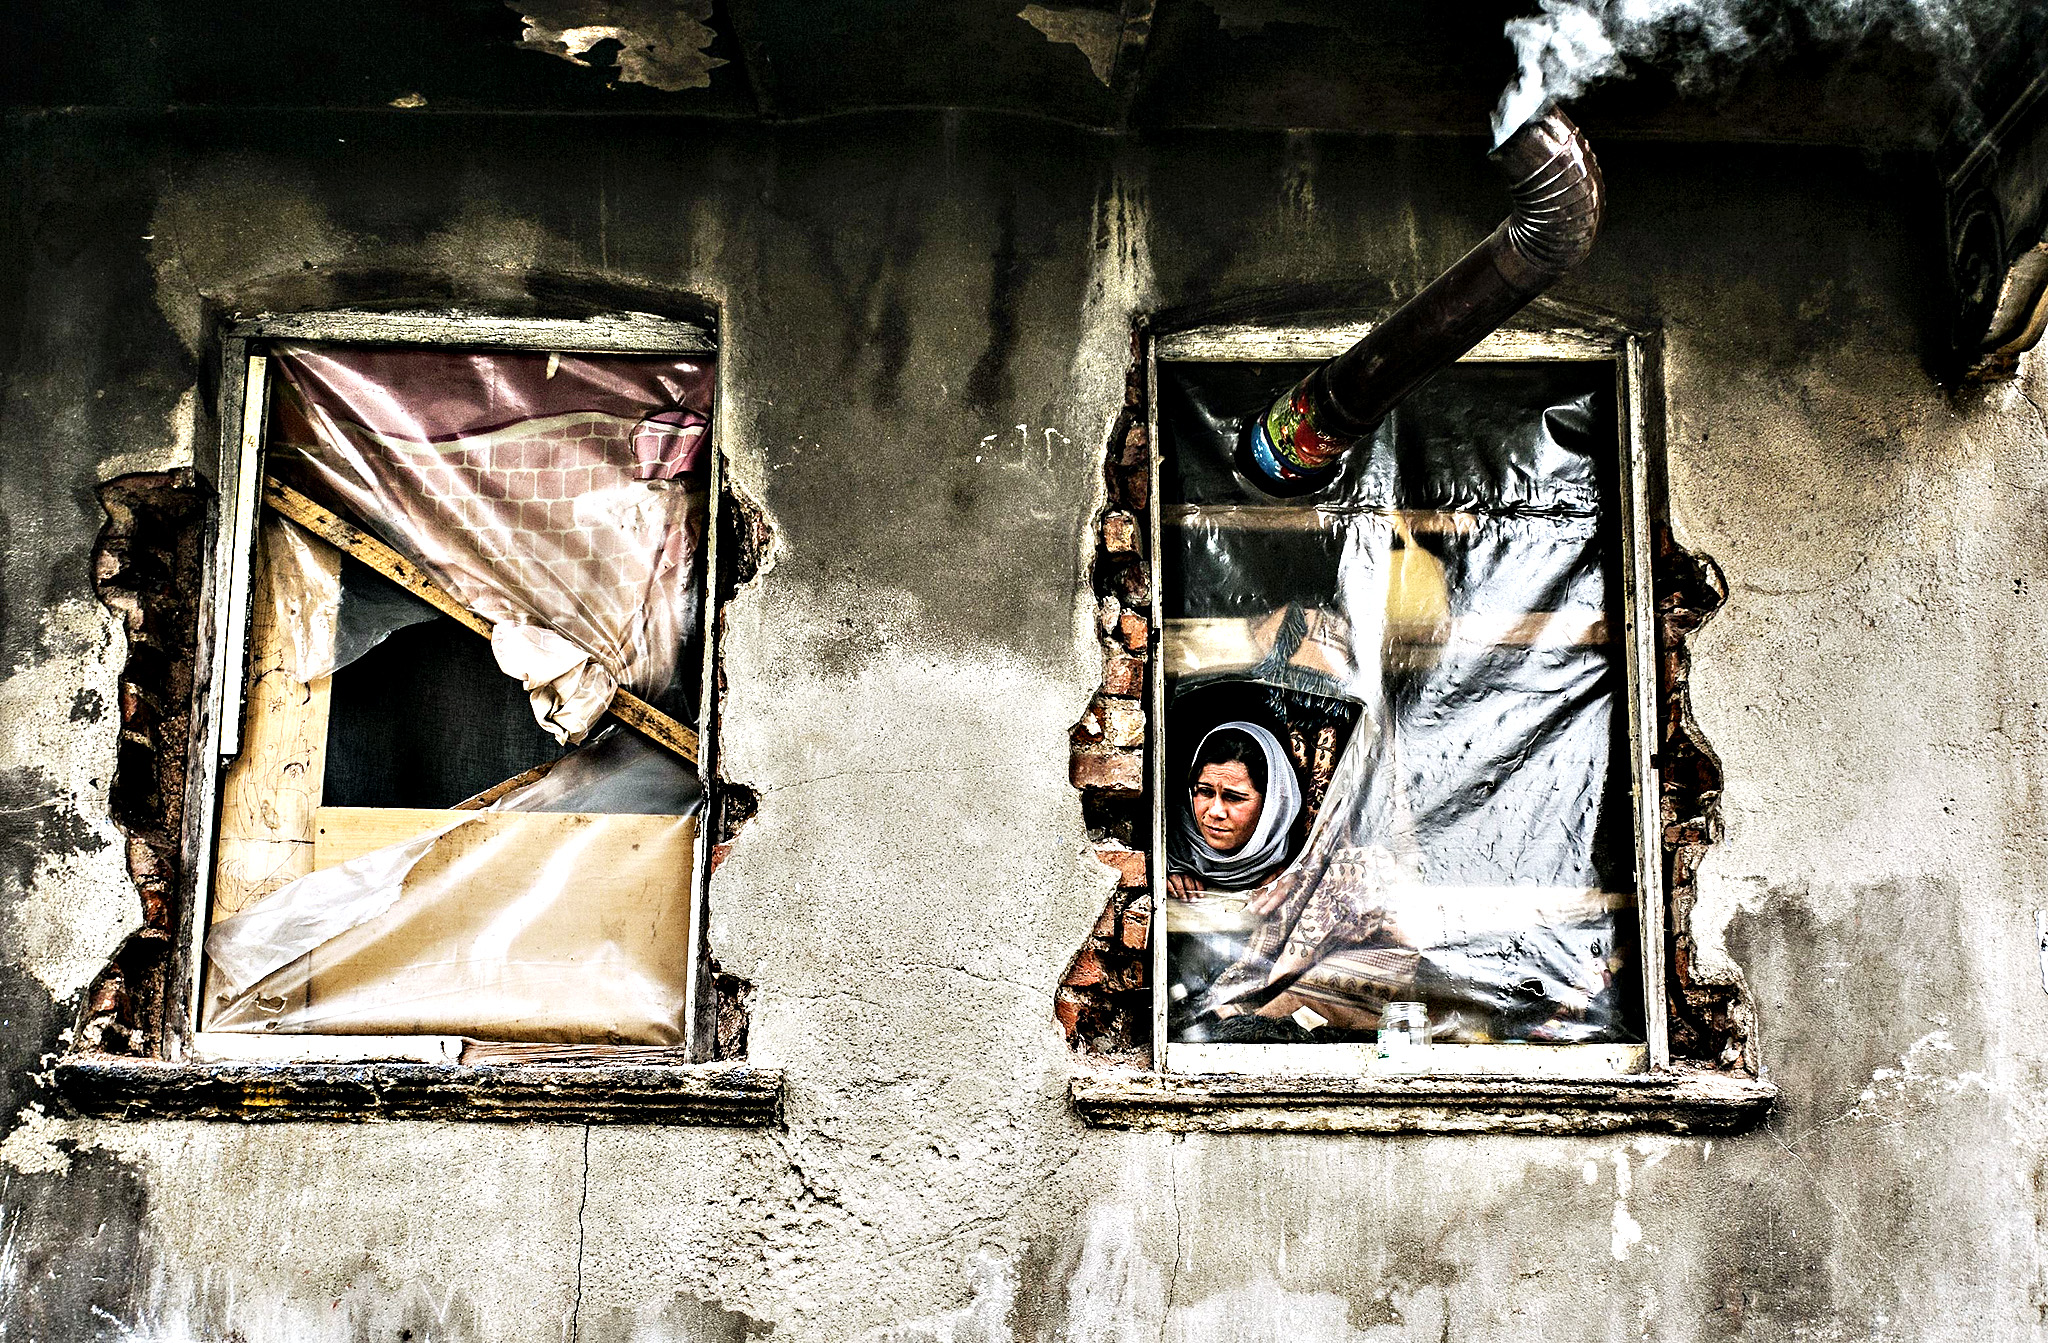 A Syrian refugee woman looks out from a window with no glass, in a house in the Kucukpazar area of Istanbul, on March  4, 2014. Syrian government forces are waging a campaign of siege warfare and starvation against civilians as part of its military strategy, a UN-mandated probe said on March 5. Syria's war has since March 2011 killed more than 140,000 people and forced millions more to flee.